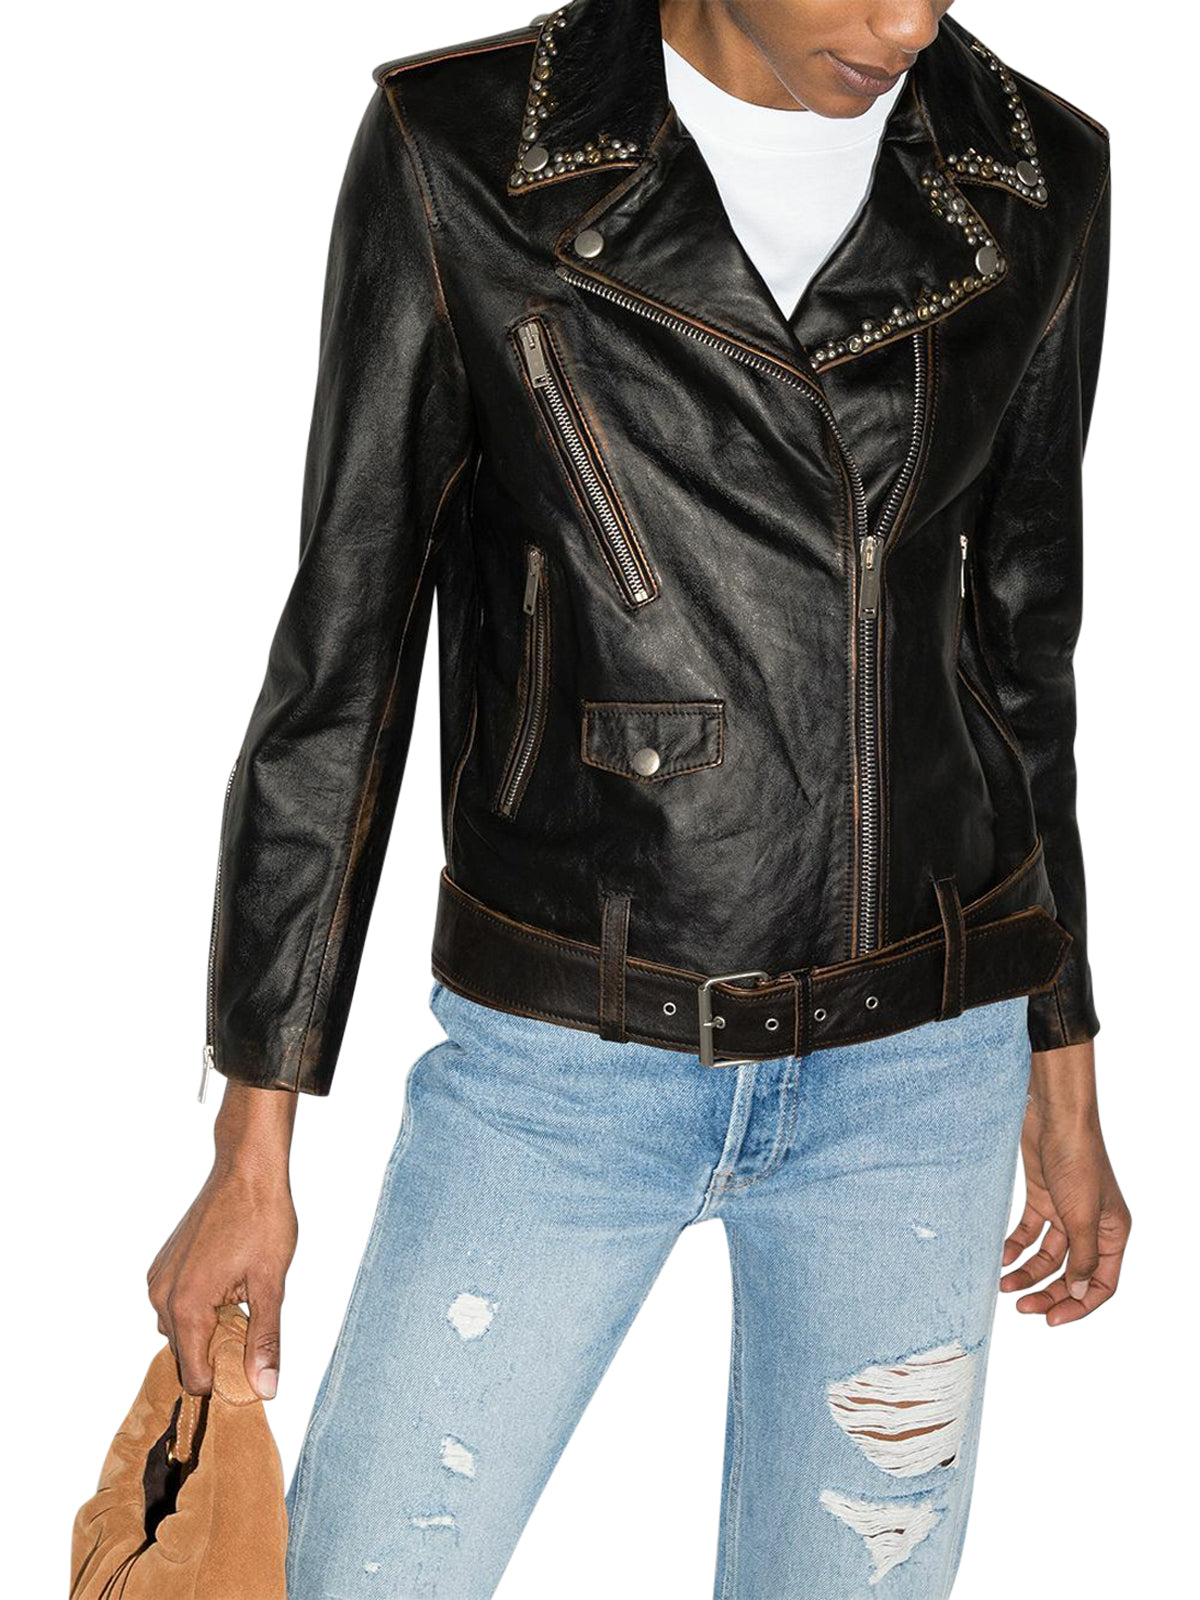 stud-embellished leather biker jacket